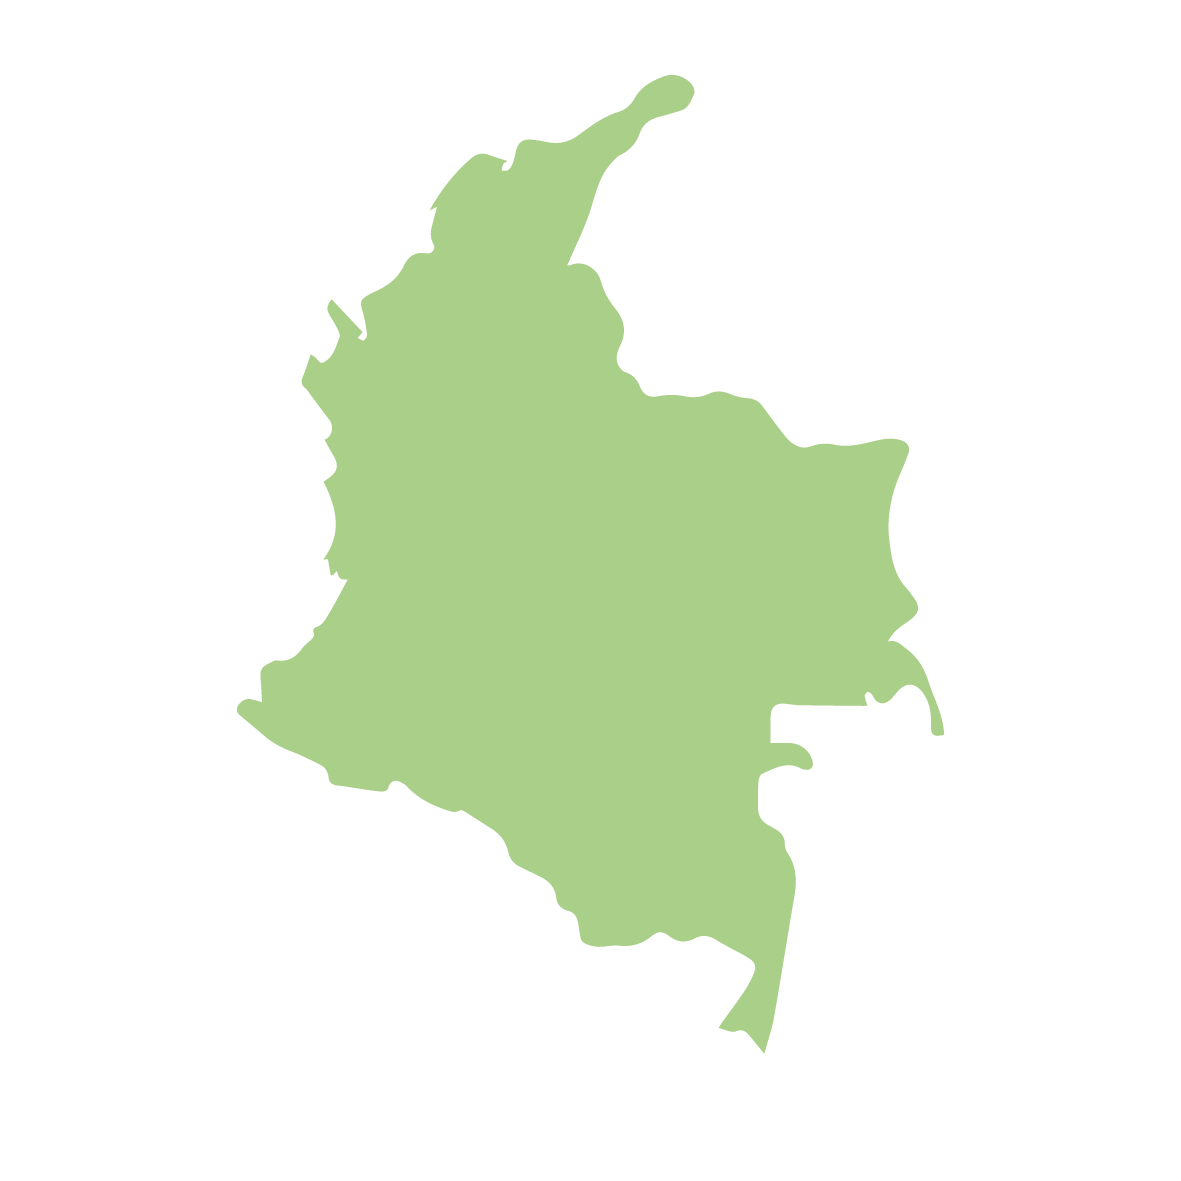 Colombia - Map